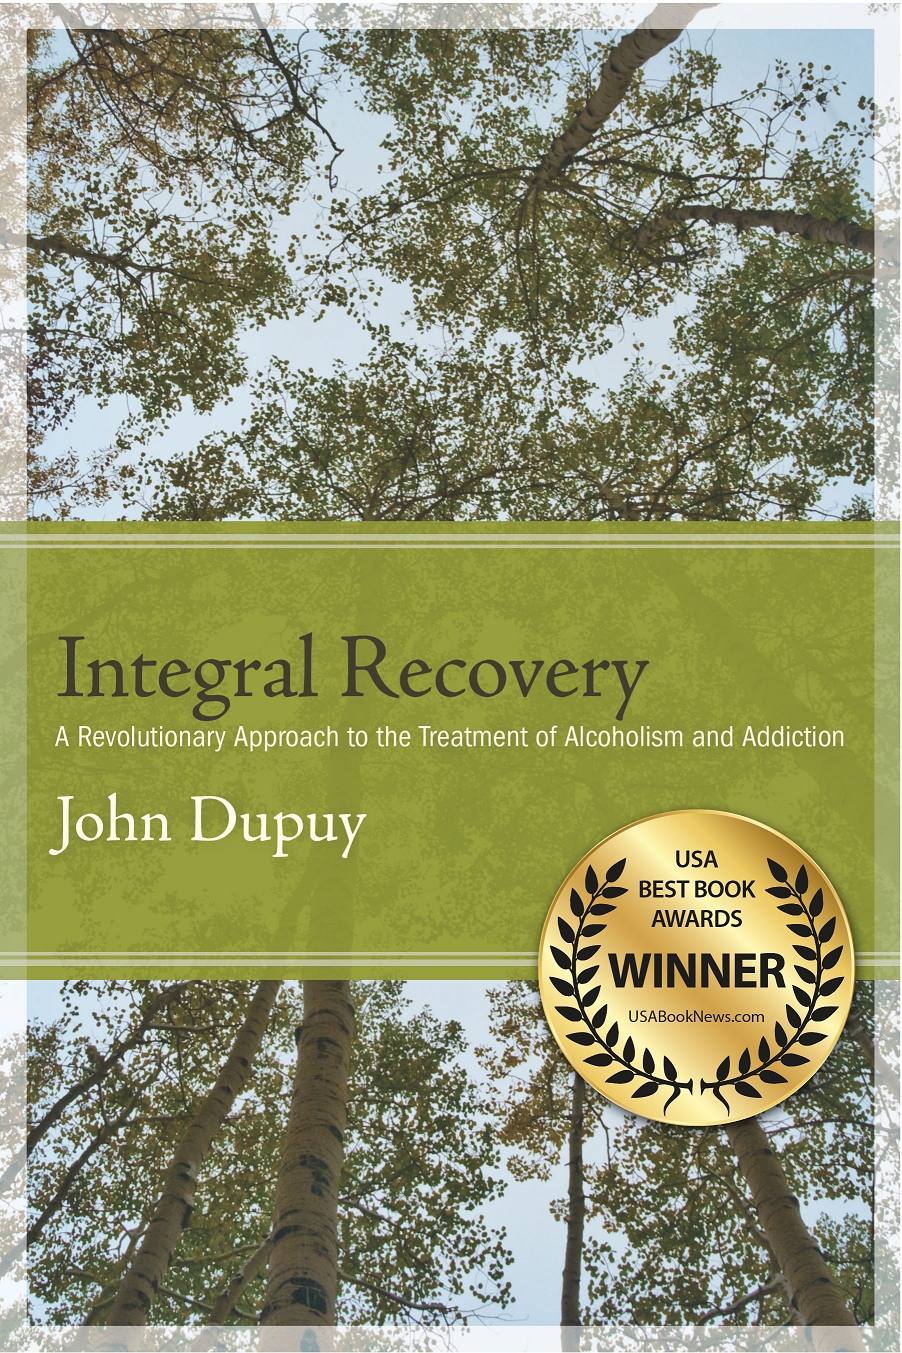 Best Book Cover Awards : Groundbreaking book on recovery from addiction and